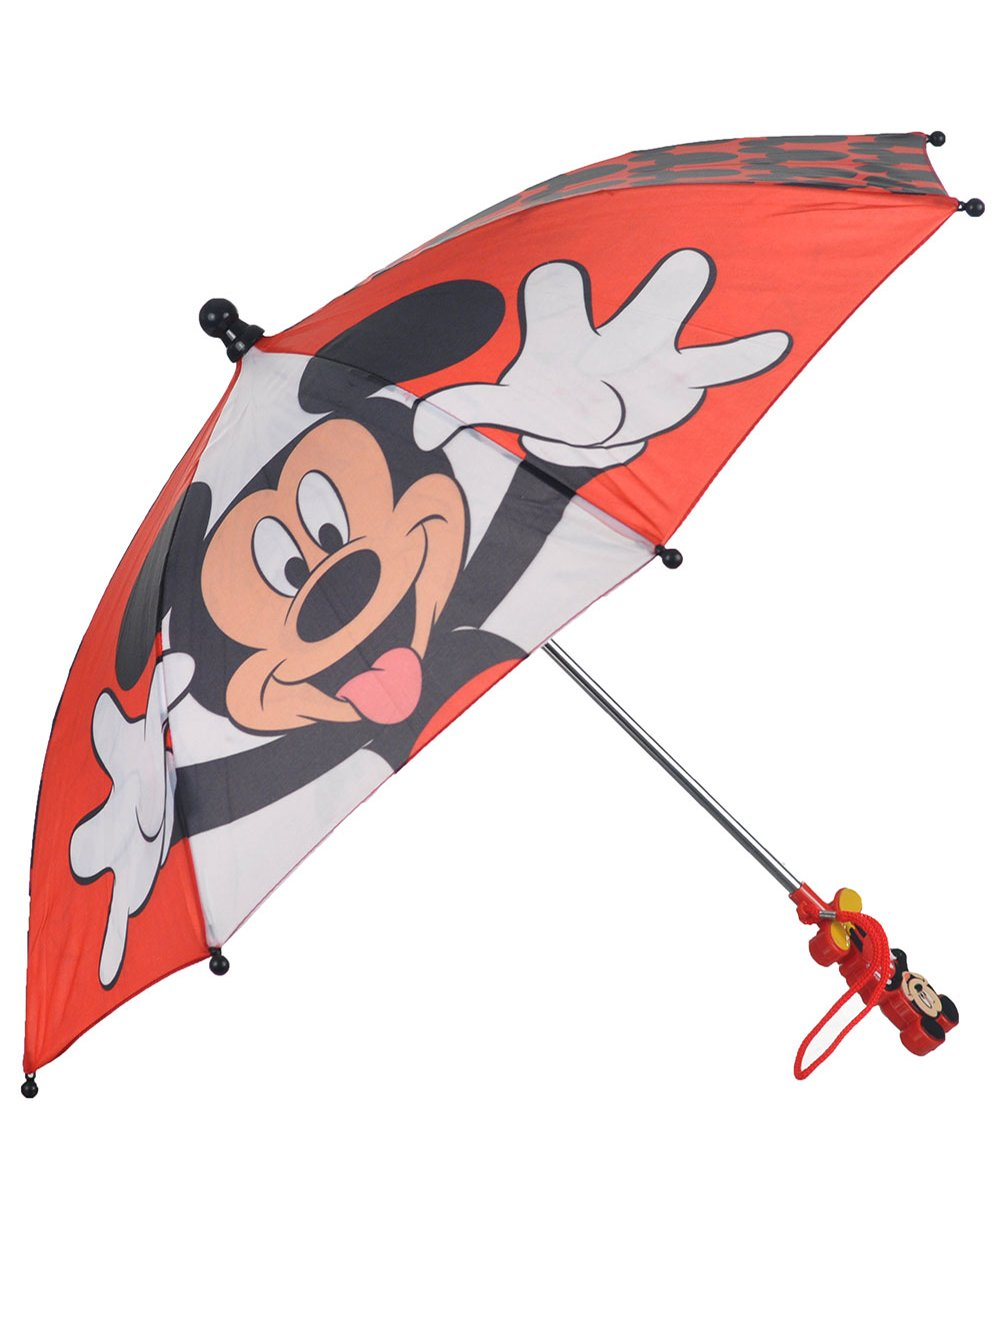 Mickey Mouse I'm Here! Umbrella - red, one size